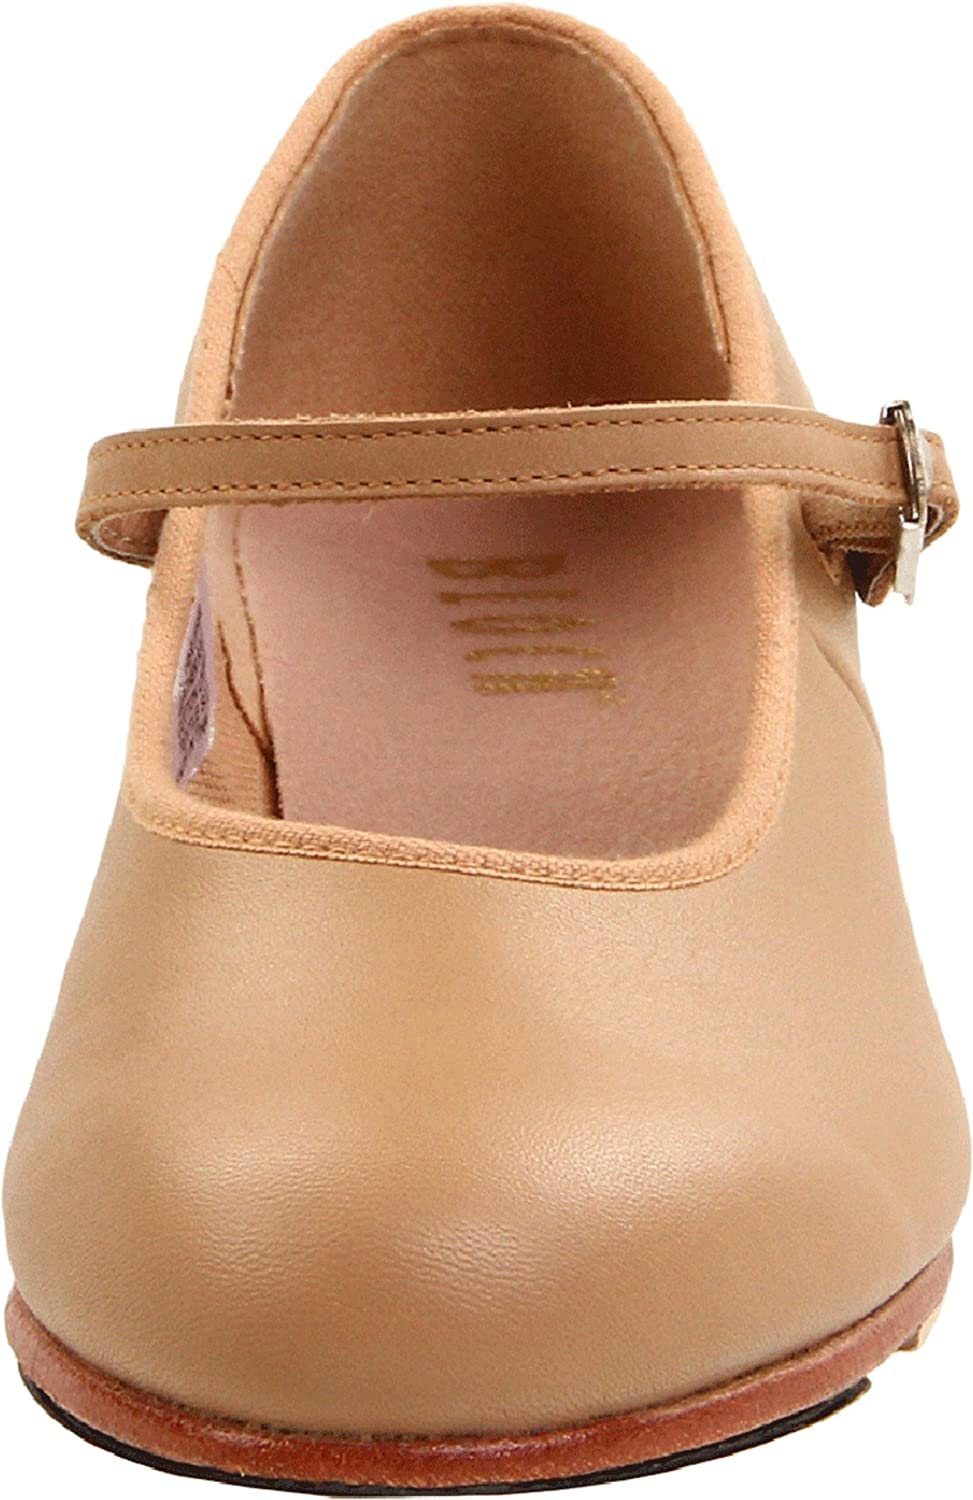 Bloch Dance Womens Tap On Leather Tap Shoe